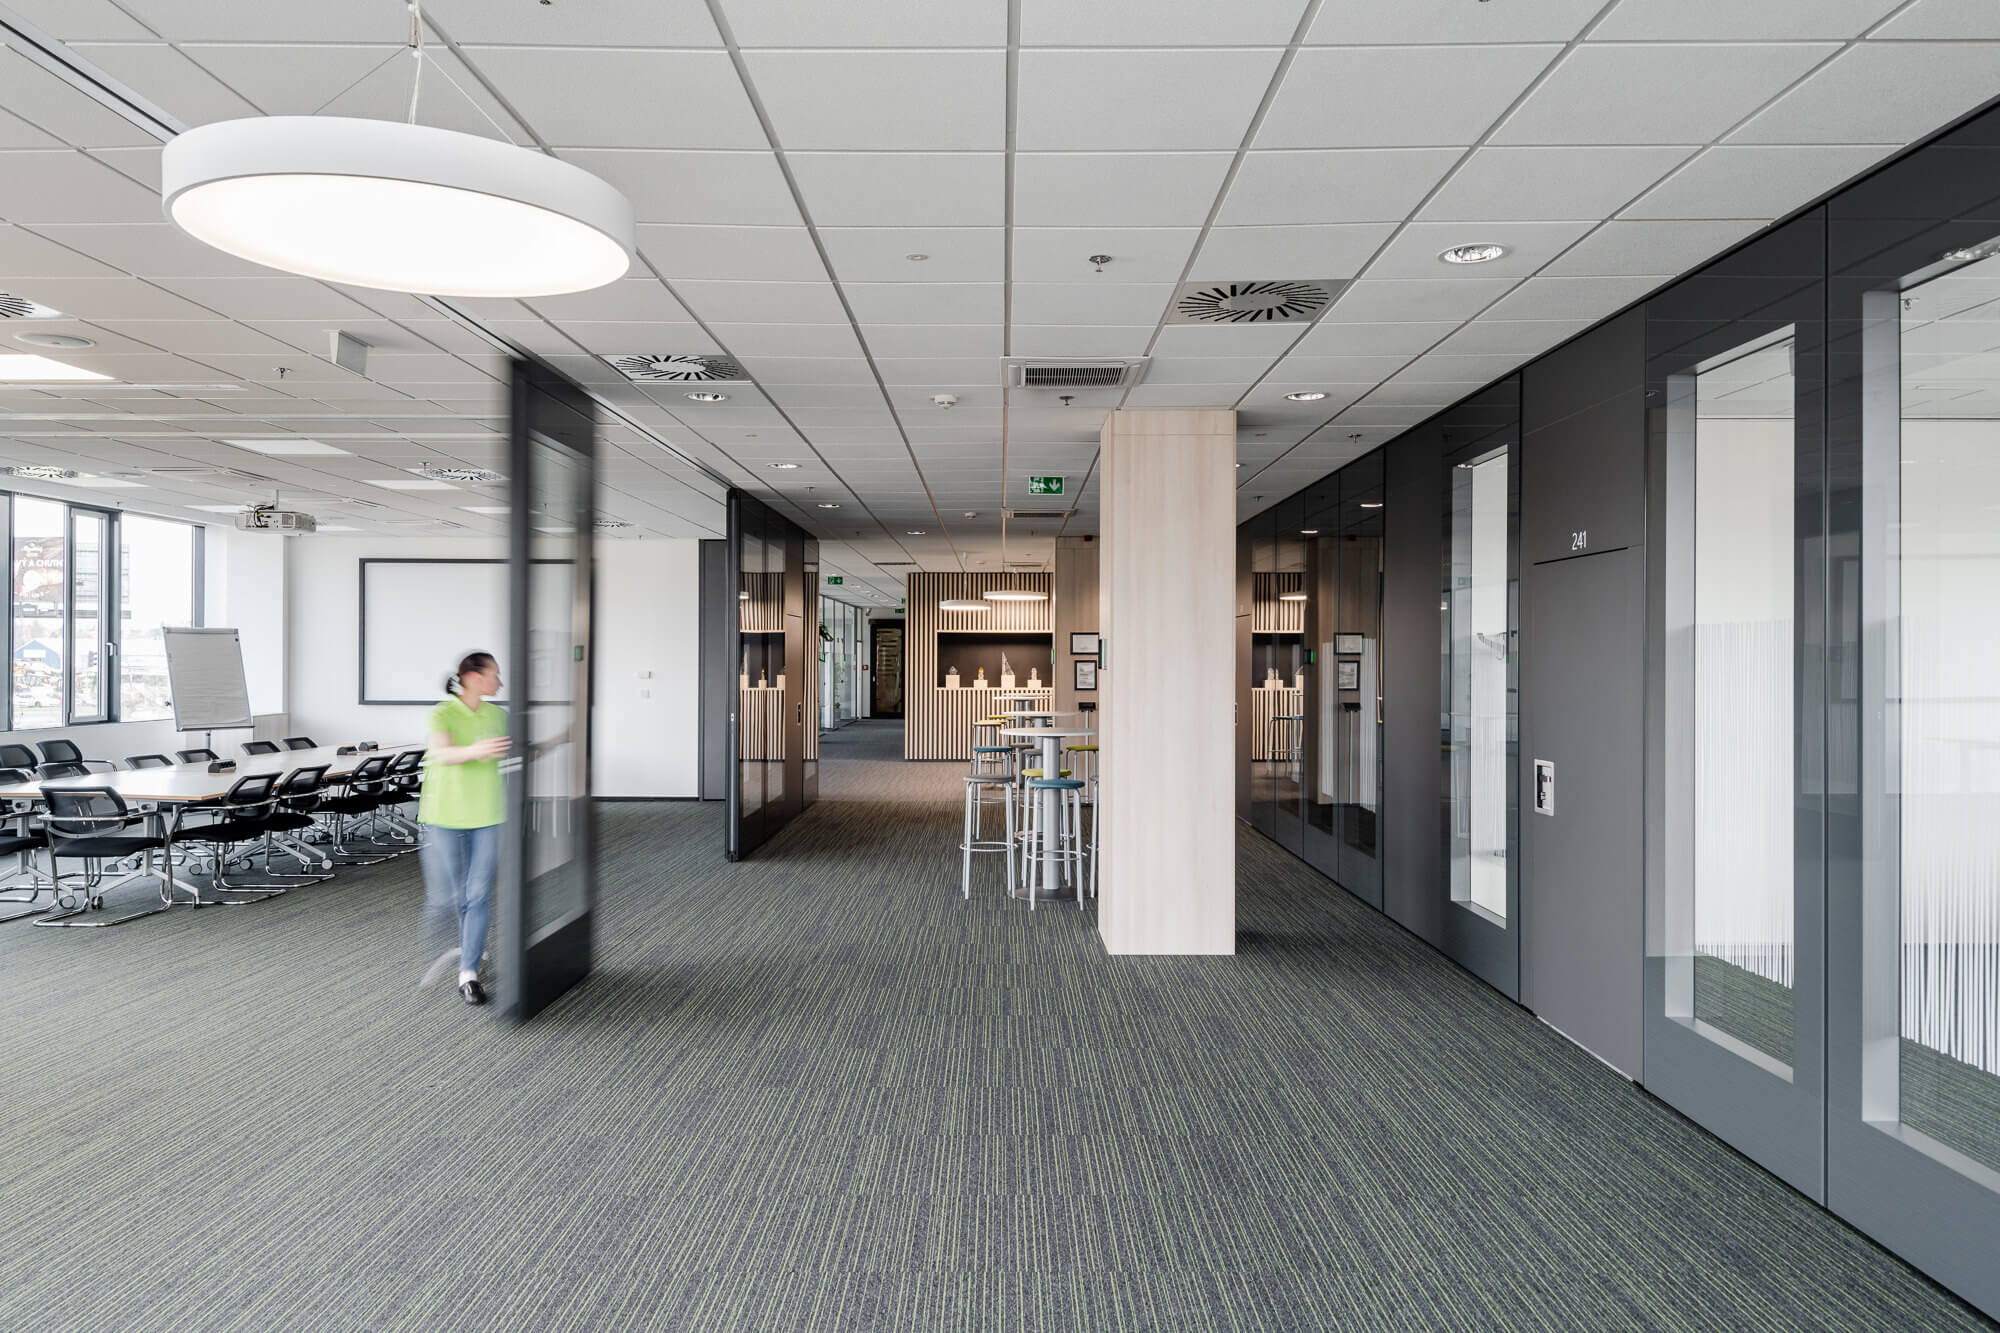 Effective use of administrative and social spaces